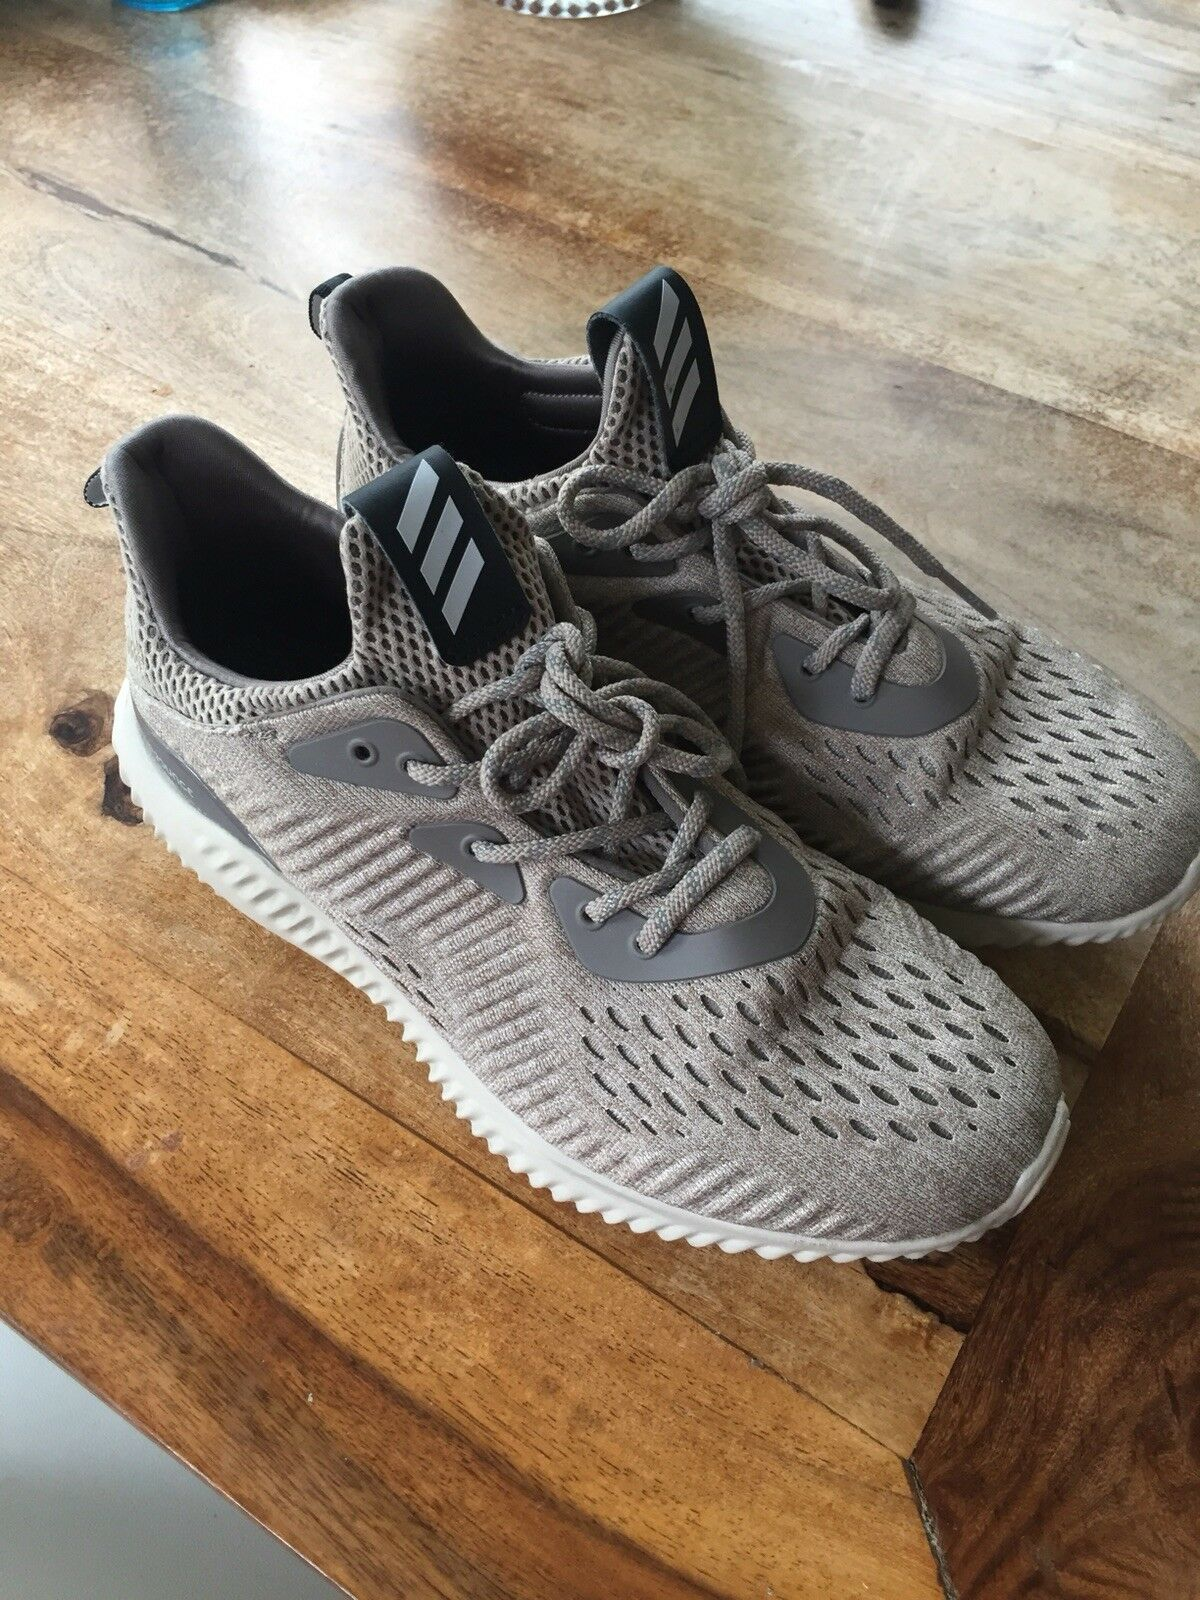 NEW adidas alphabounce BEIGE BEIGE BEIGE men's 6.5 womens 8.5 - only wore a few times 033be9